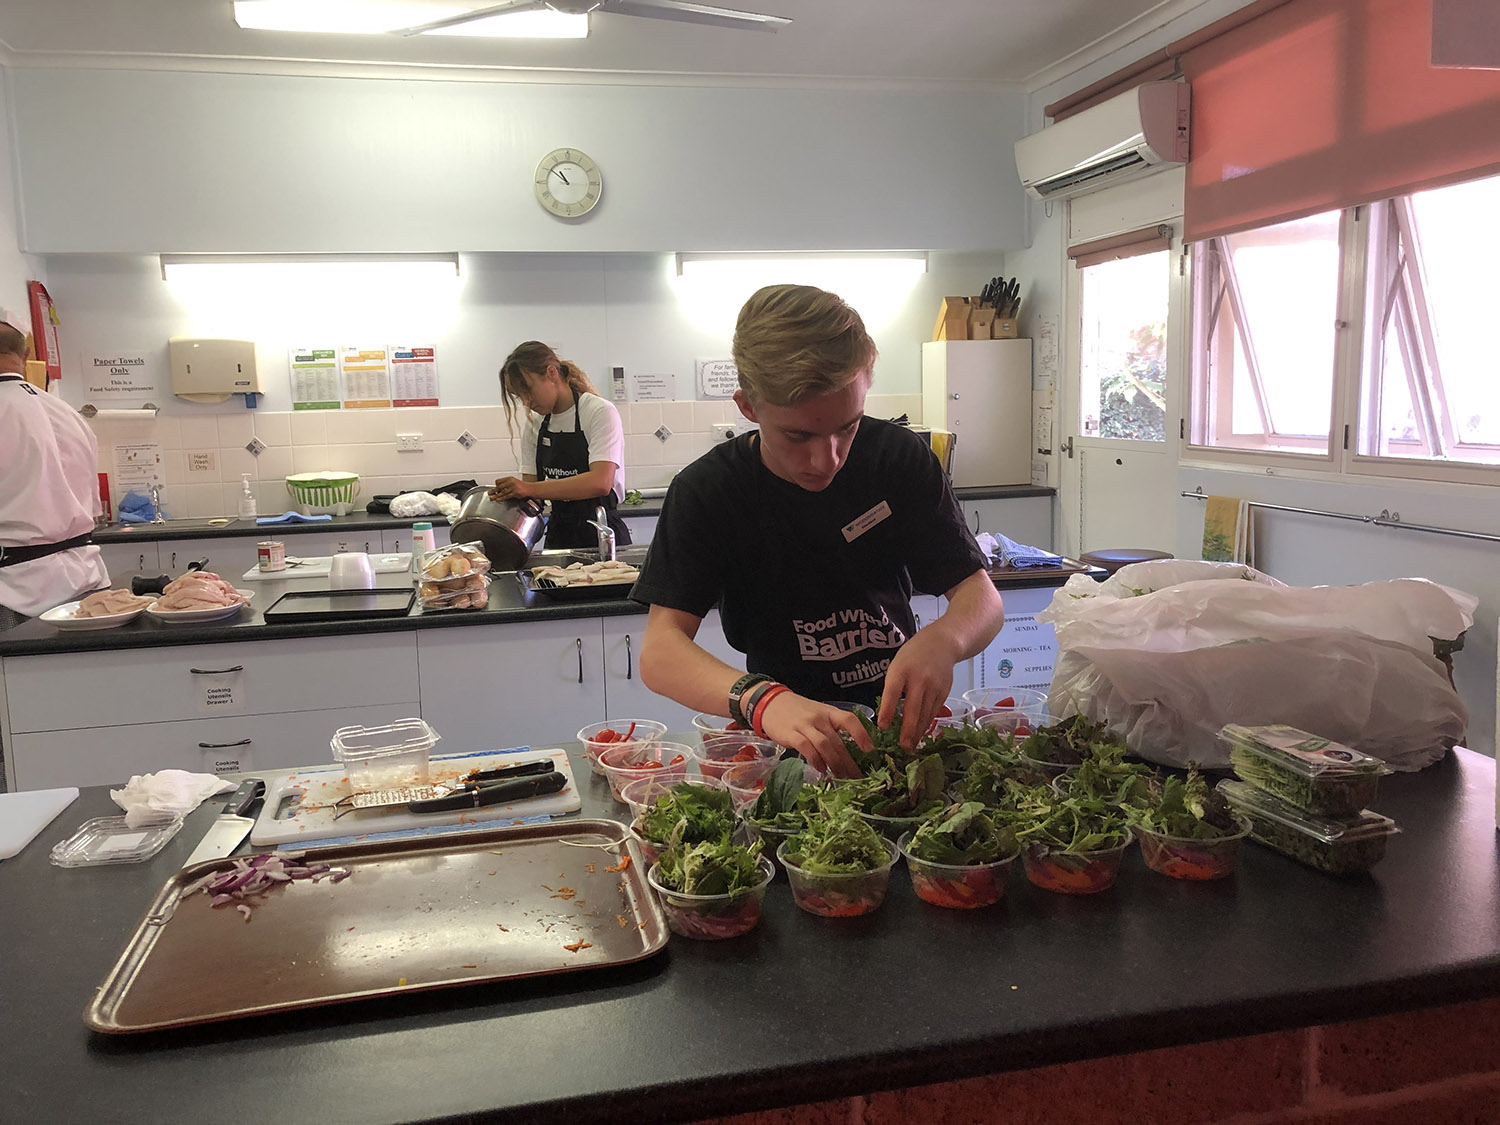 Wodonga TAFE students work in 'Food Without Barriers' social initiative with Uniting Wodonga